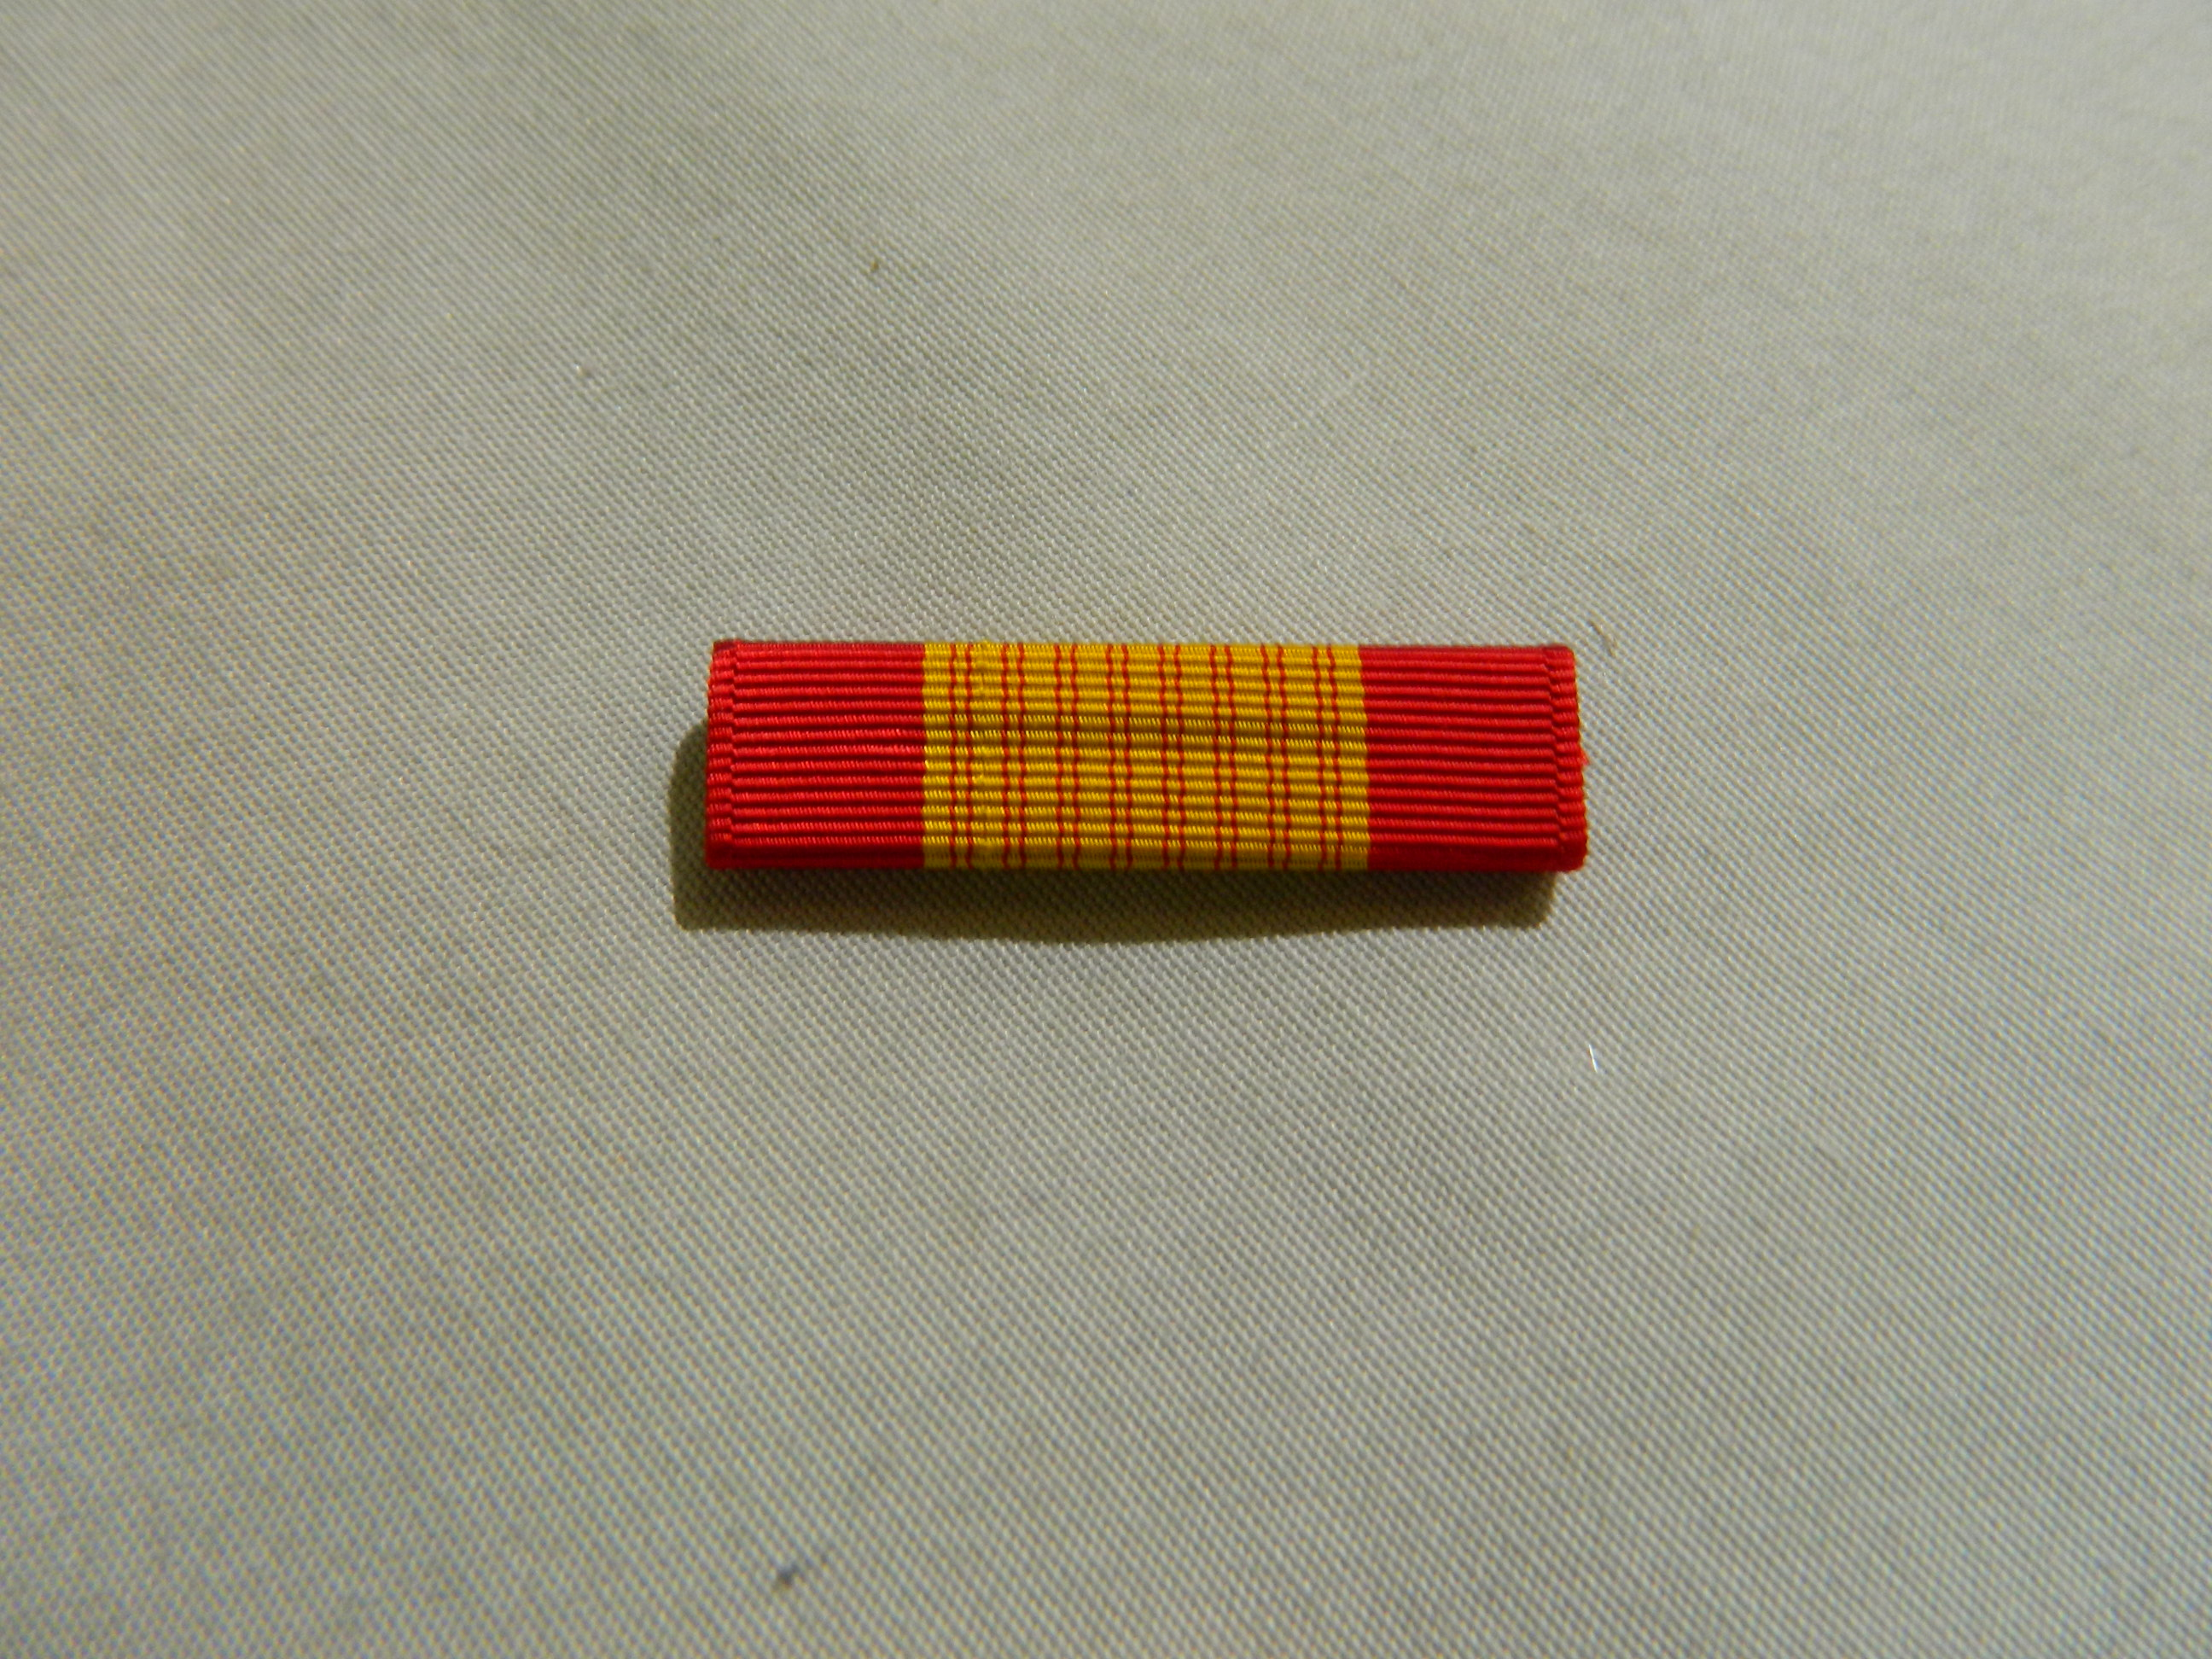 Ribbon: Vietnam Gallantry Cross- NO PALM